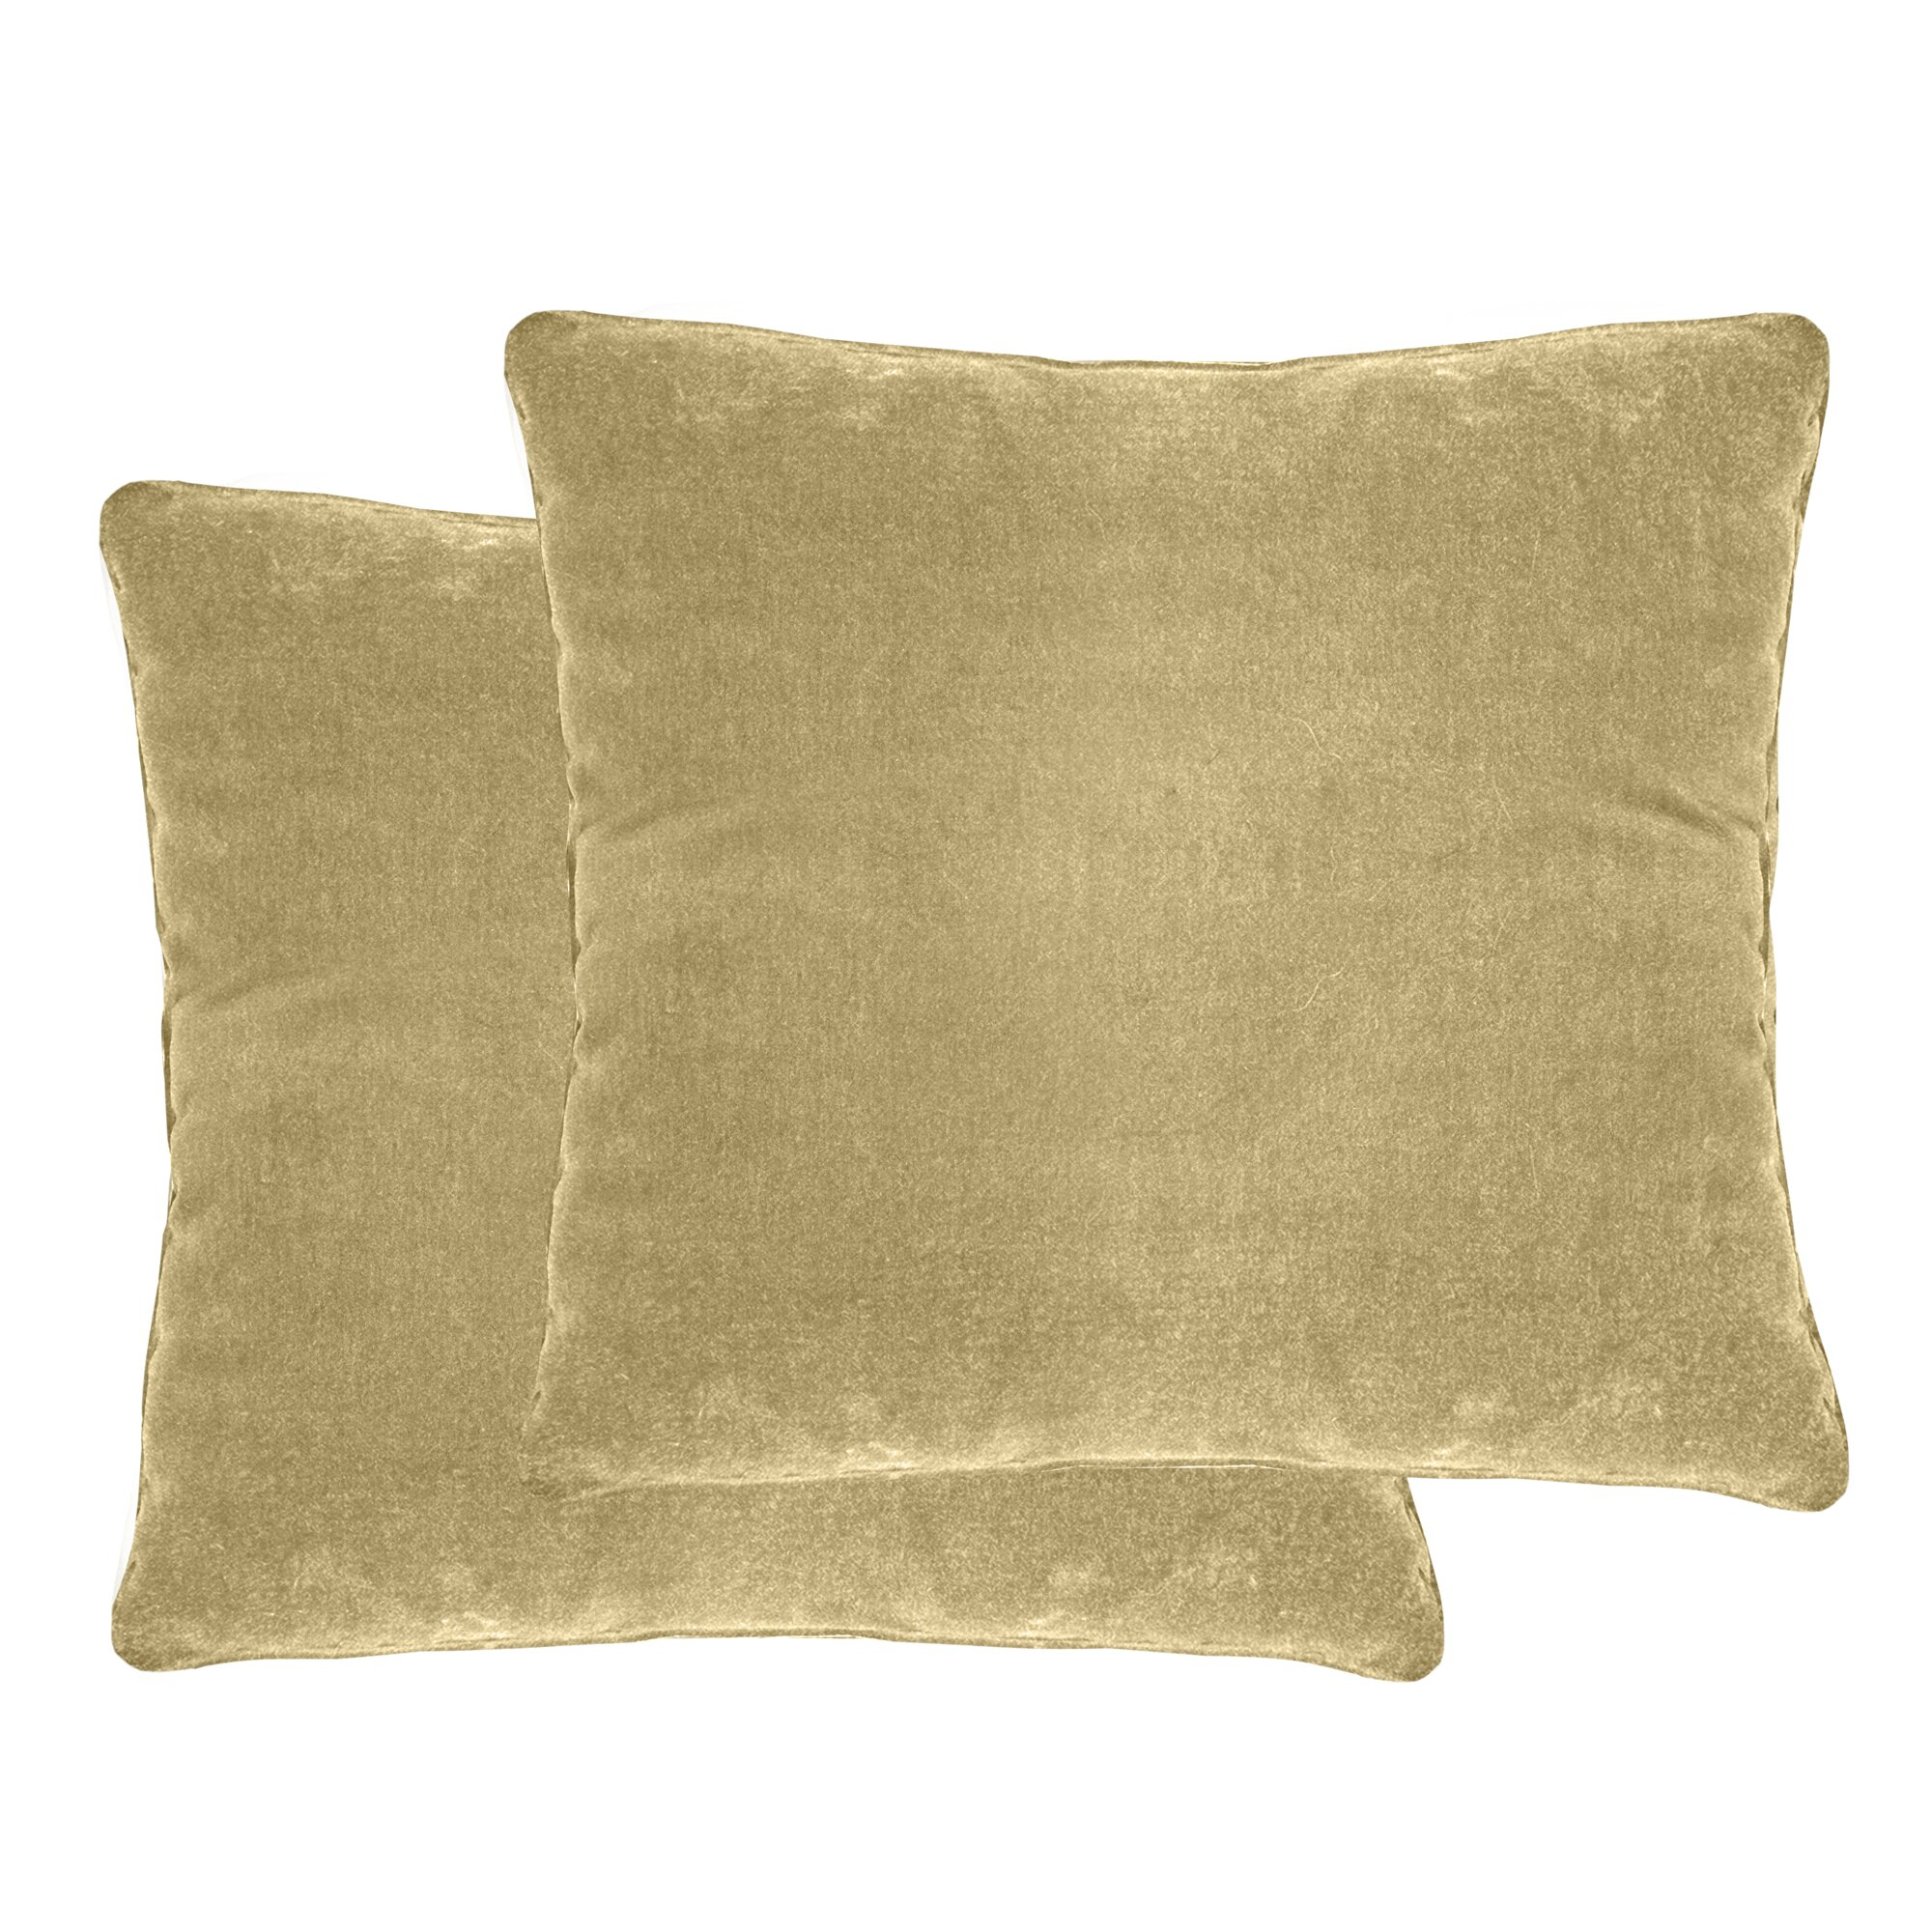 Throw Pillows Lowes : Veratex Luxury Velvet Throw Pillow & Reviews Wayfair